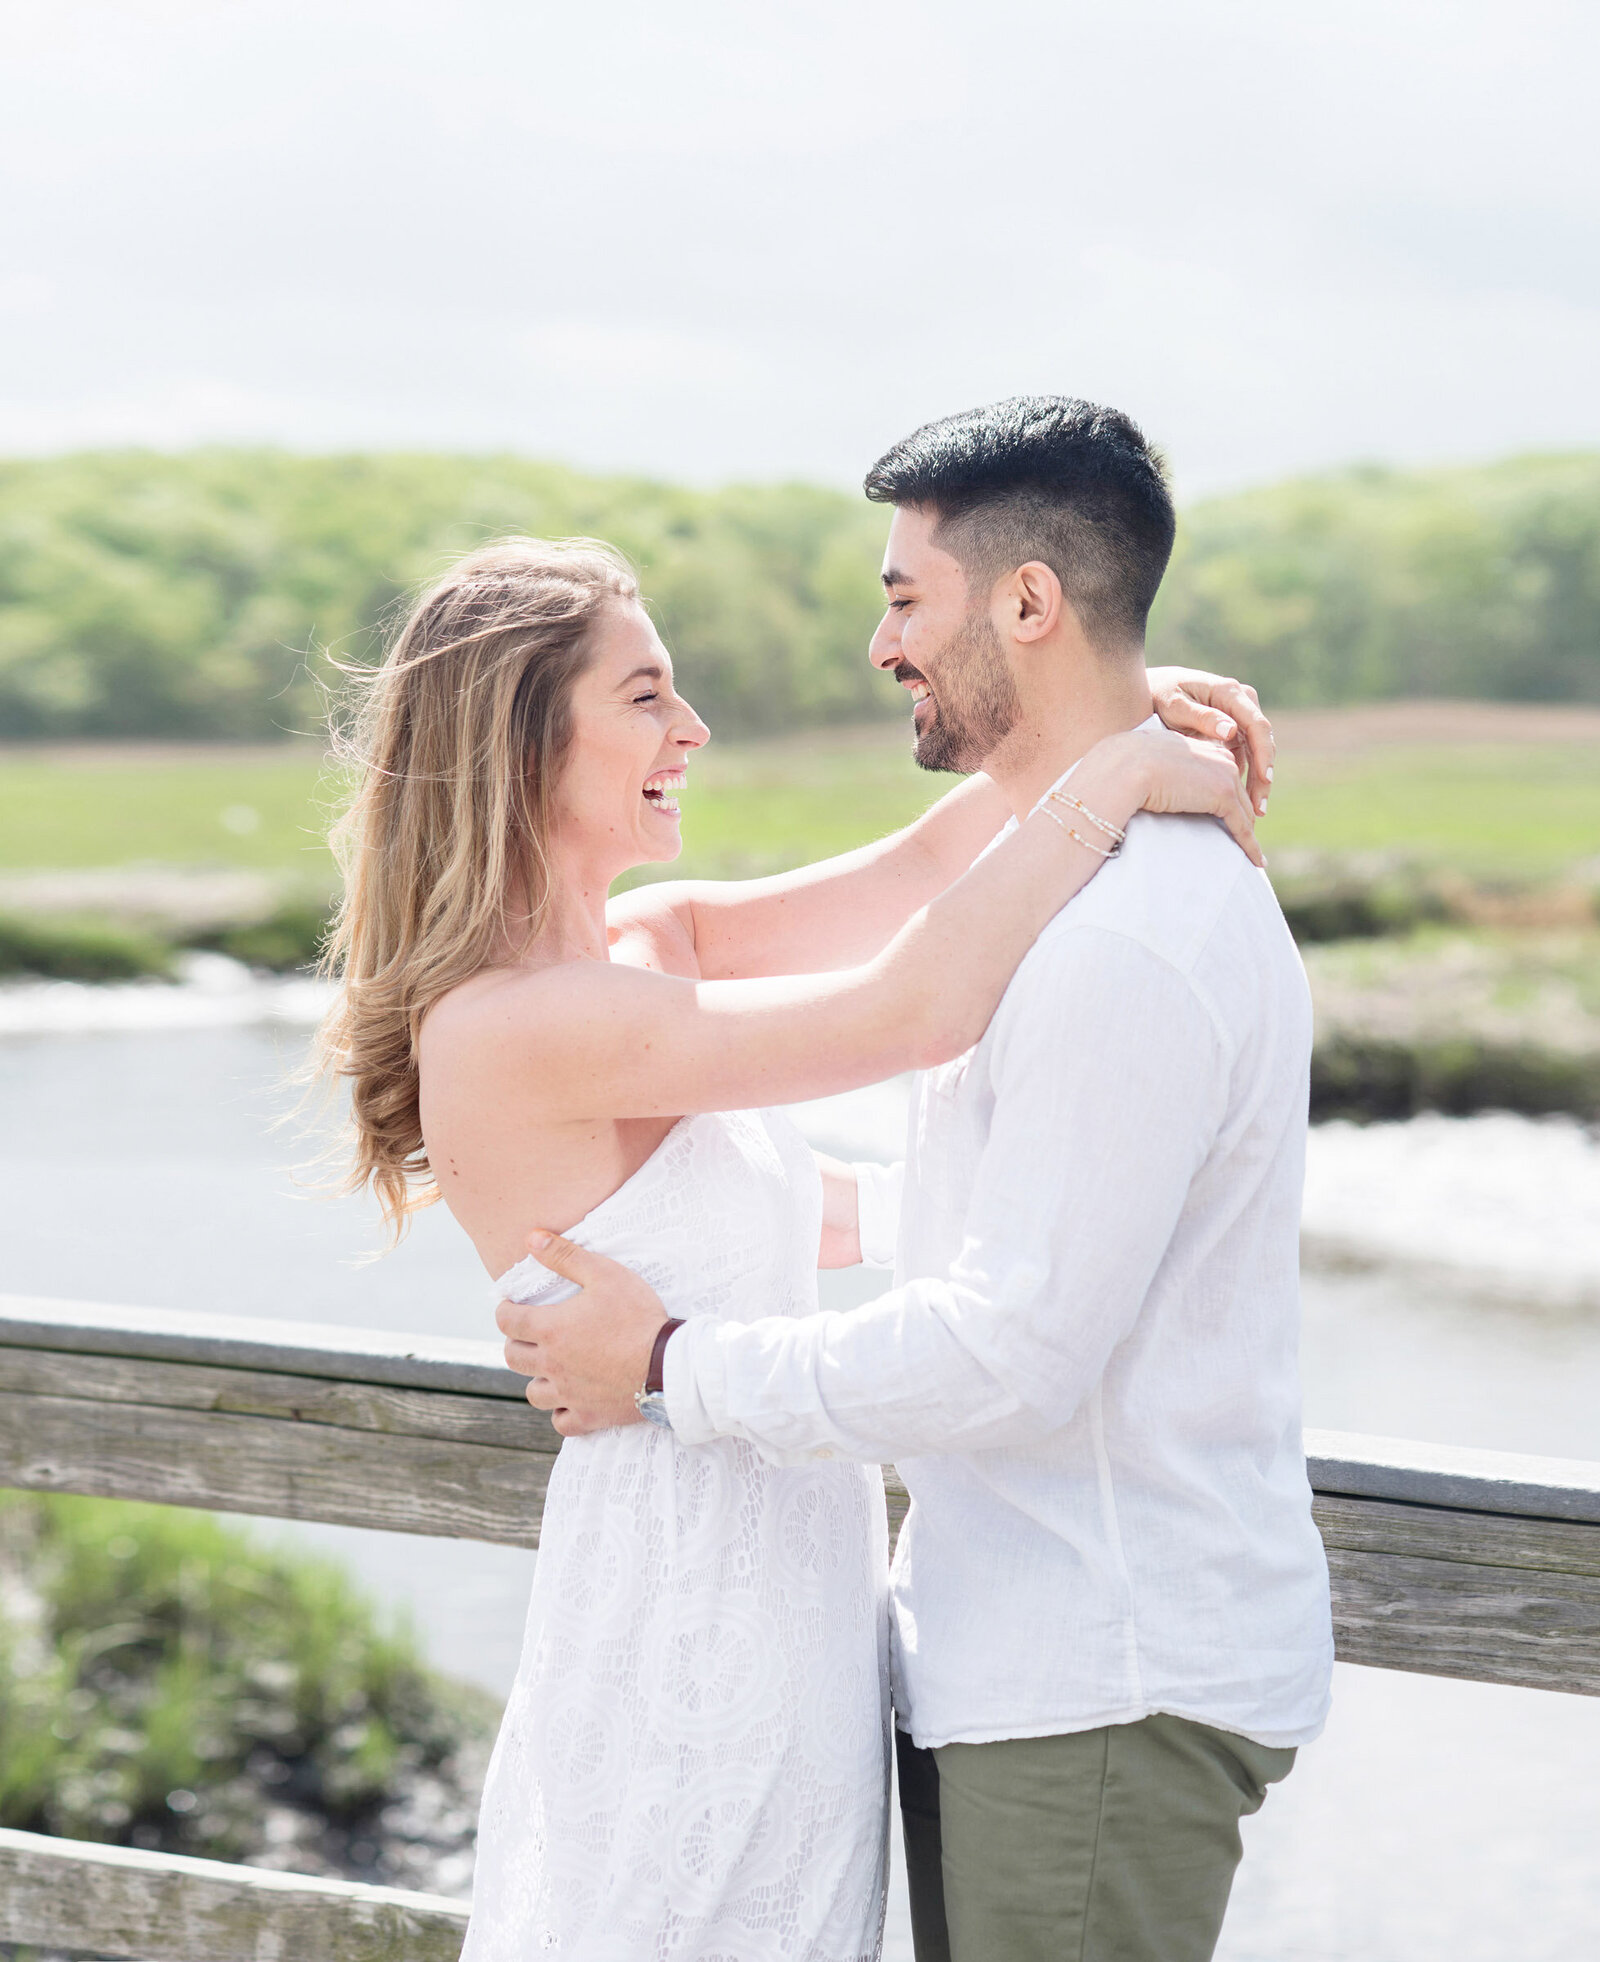 93-hudson-valley-ny-engagement-photographer